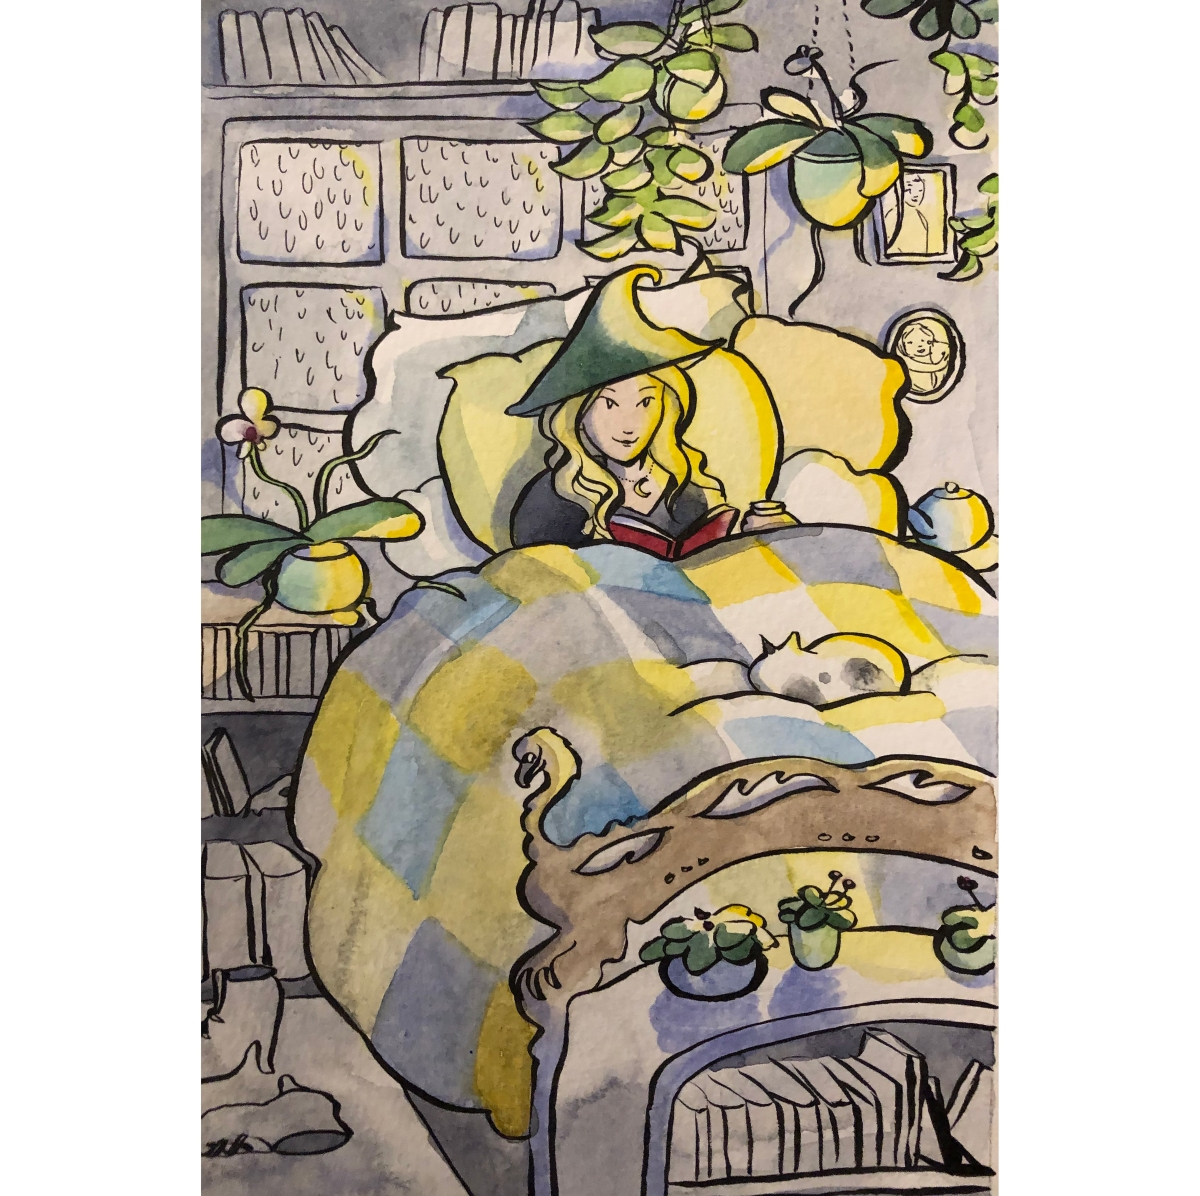 A blond haired white woman witch in a cozy bed with a cat, a book, and a cup of tea Carmen Wood Illustration Minneapolis comic art graphic novel children's illustration fantasy art